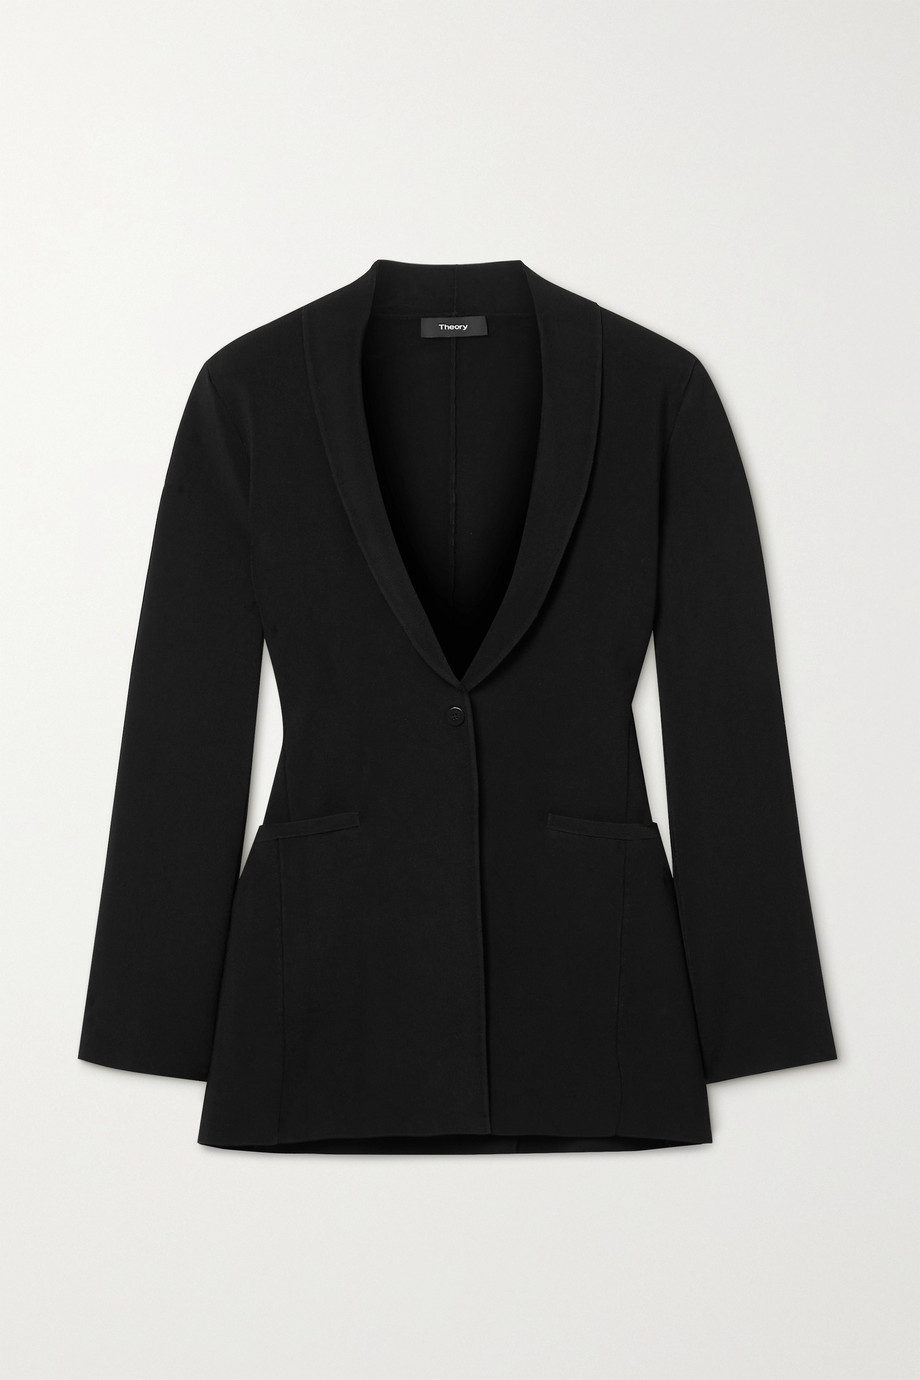 THEORY Etiennette woven cardigan